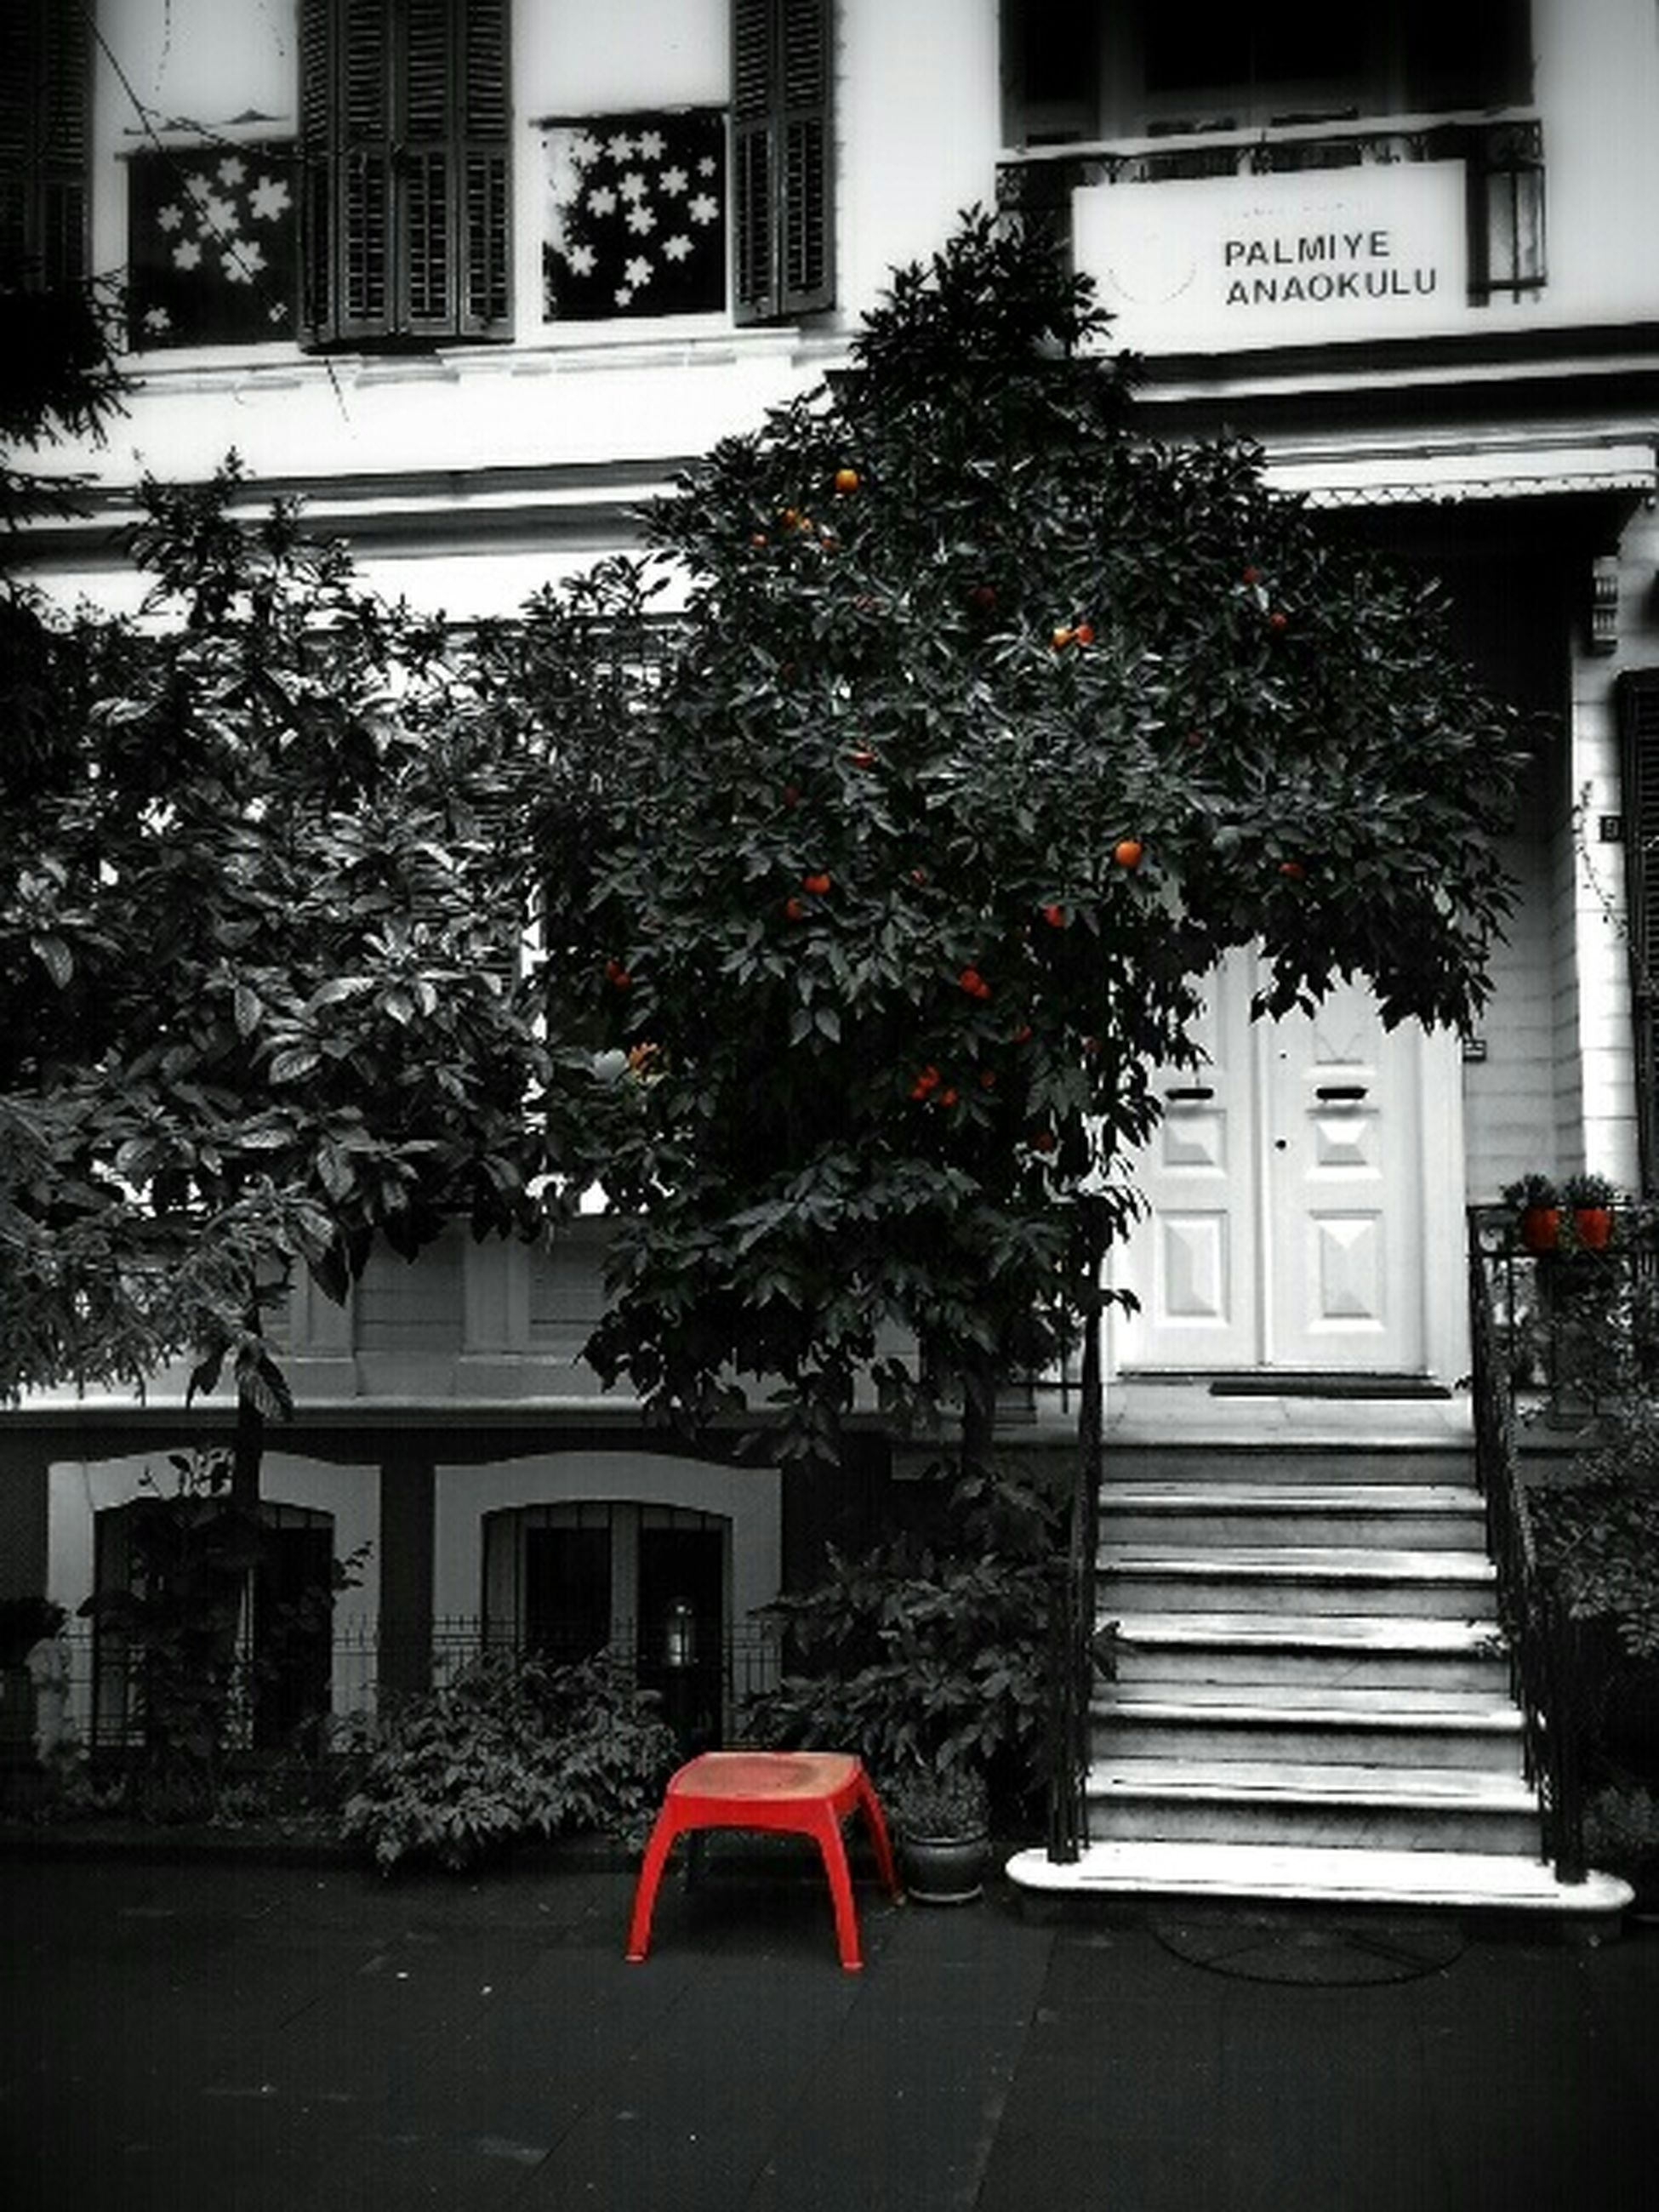 building exterior, architecture, built structure, tree, city, potted plant, house, window, growth, plant, residential structure, residential building, day, street, red, outdoors, flower, bench, sidewalk, no people